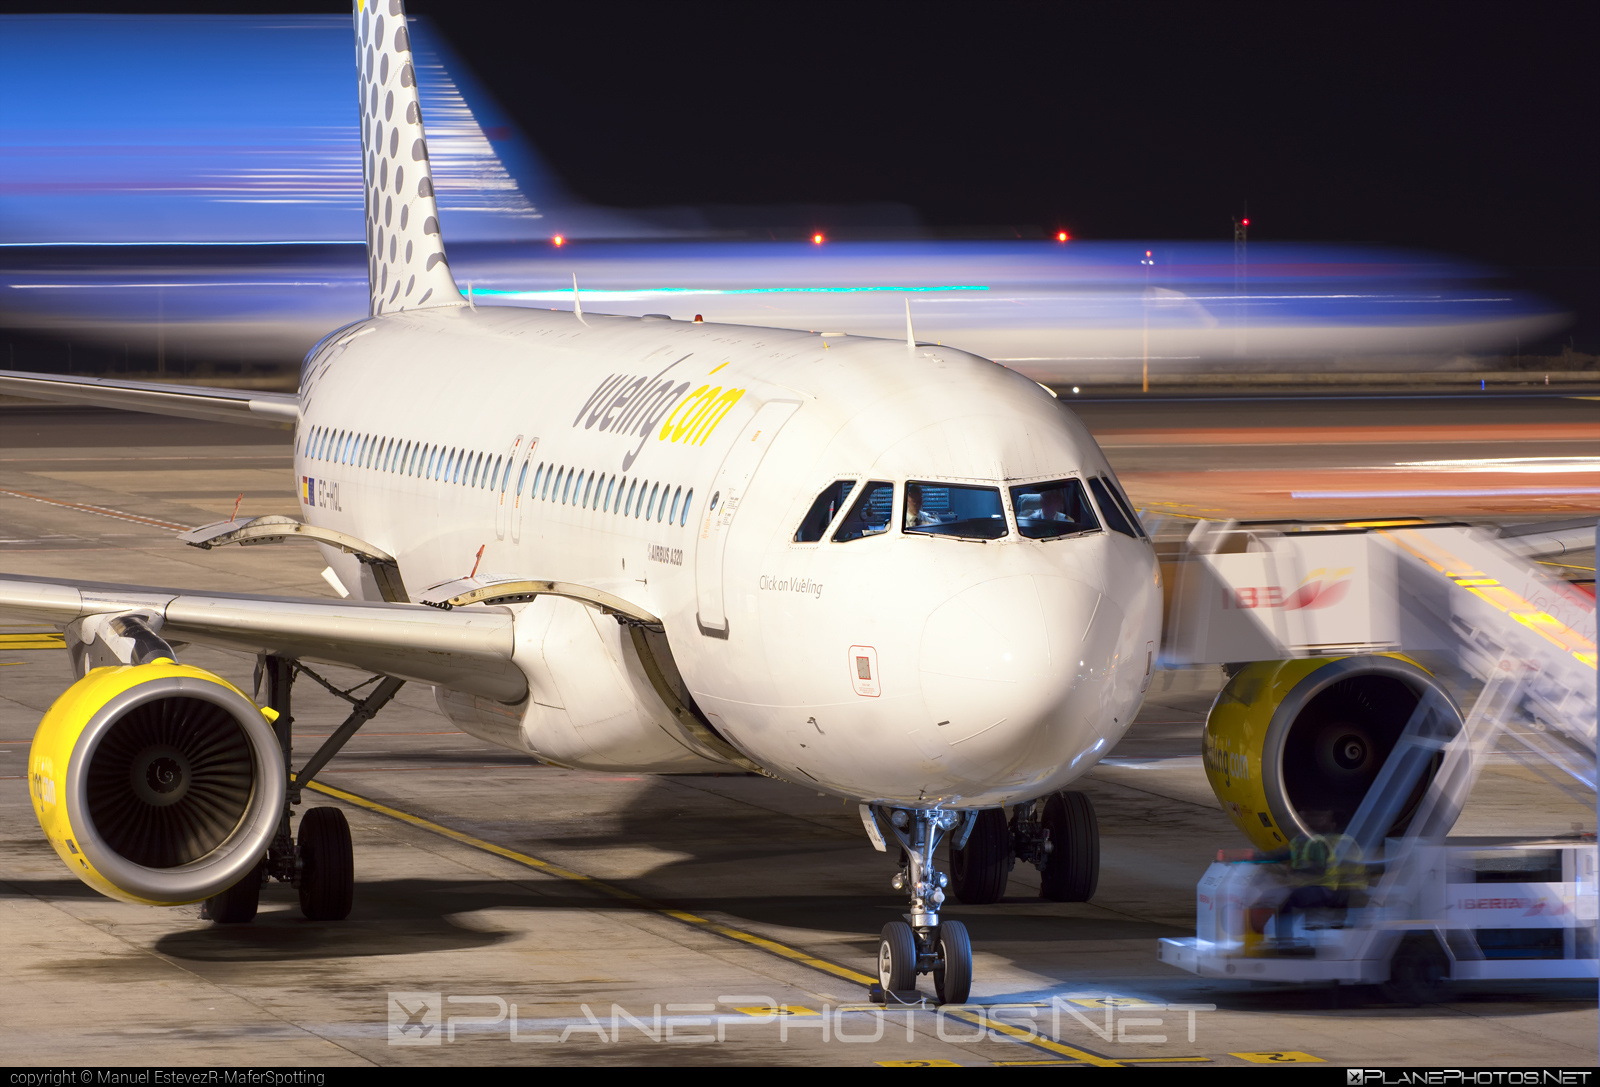 Airbus A320-214 - EC-HQL operated by Vueling Airlines #a320 #a320family #airbus #airbus320 #vueling #vuelingairlines